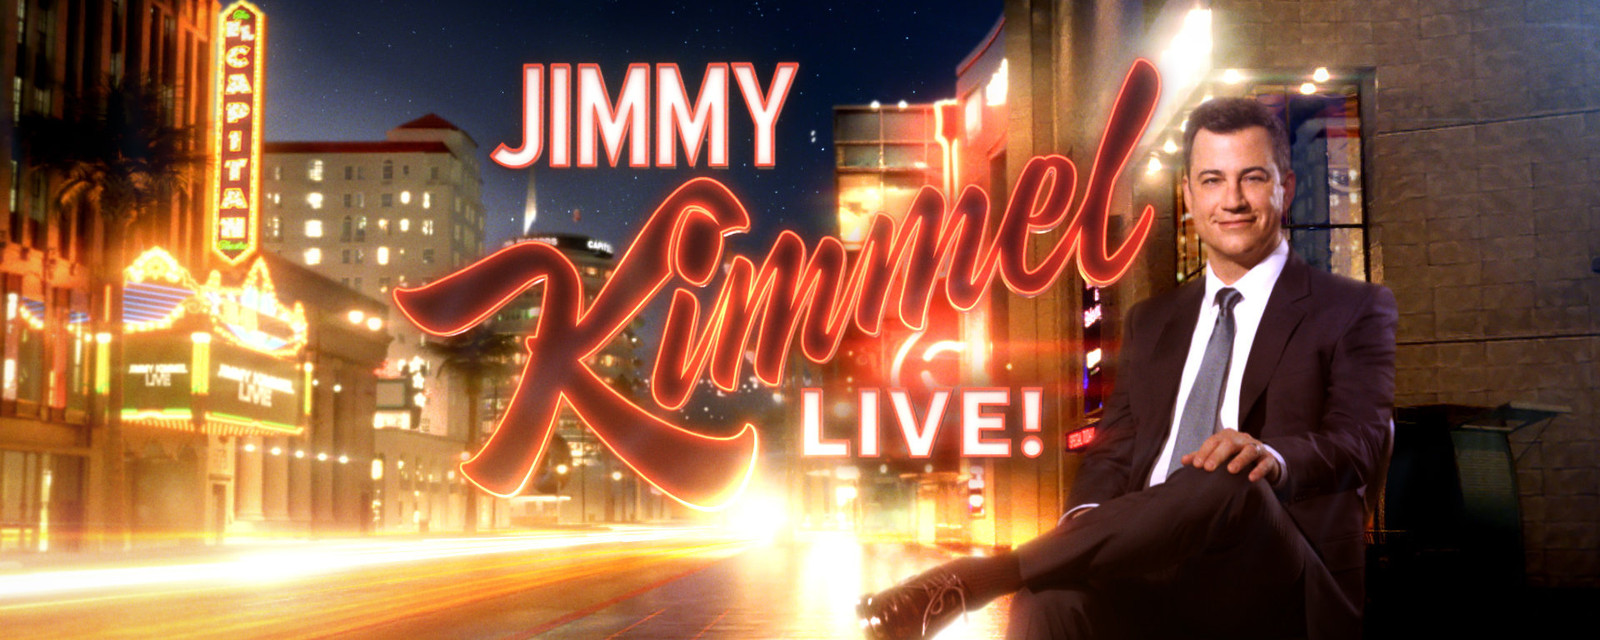 Jimmy Kimmel live schedule